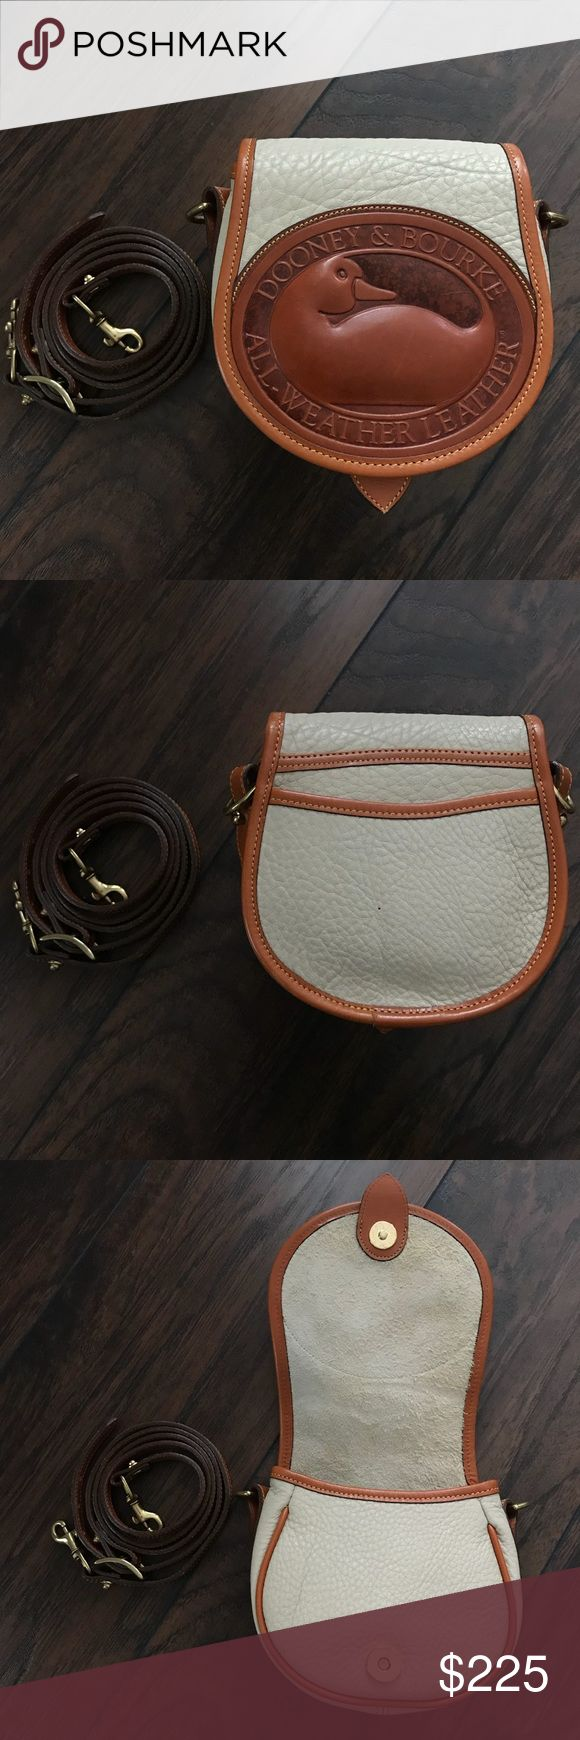 """Vintage Dooney and Bourke AWL Big Duck bag bone Vintage Dooney and Bourke All Weather Leather Big Duck bag in bone and British tan. Super hesitant to let this one go 😫 perfect little bag for any D&B lover. Small pinhole in back as seen in second picture, interior tag has been cut out, no fob. Otherwise great preowned condition! 6.5"""" x 7"""" x 3"""". Exterior back slip pocket &  interior main compartment with back slip pocket. Magnetic closure, brass hardware, adjustable strap 45""""-50"""" (can be worn…"""